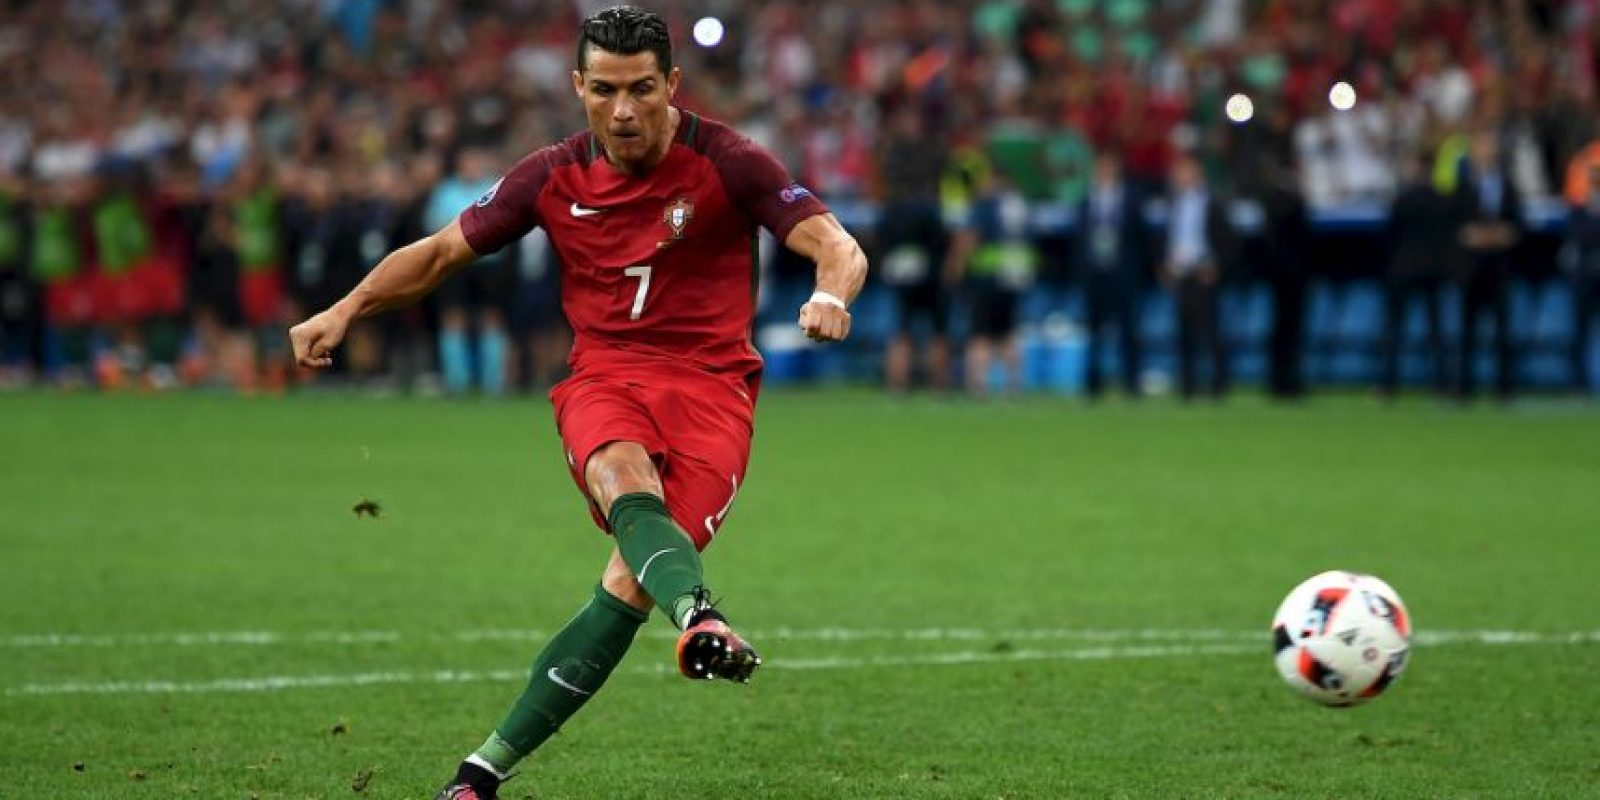 En la definición a penales ante Polonia, CR7 no falló en su intento Foto: Getty Images